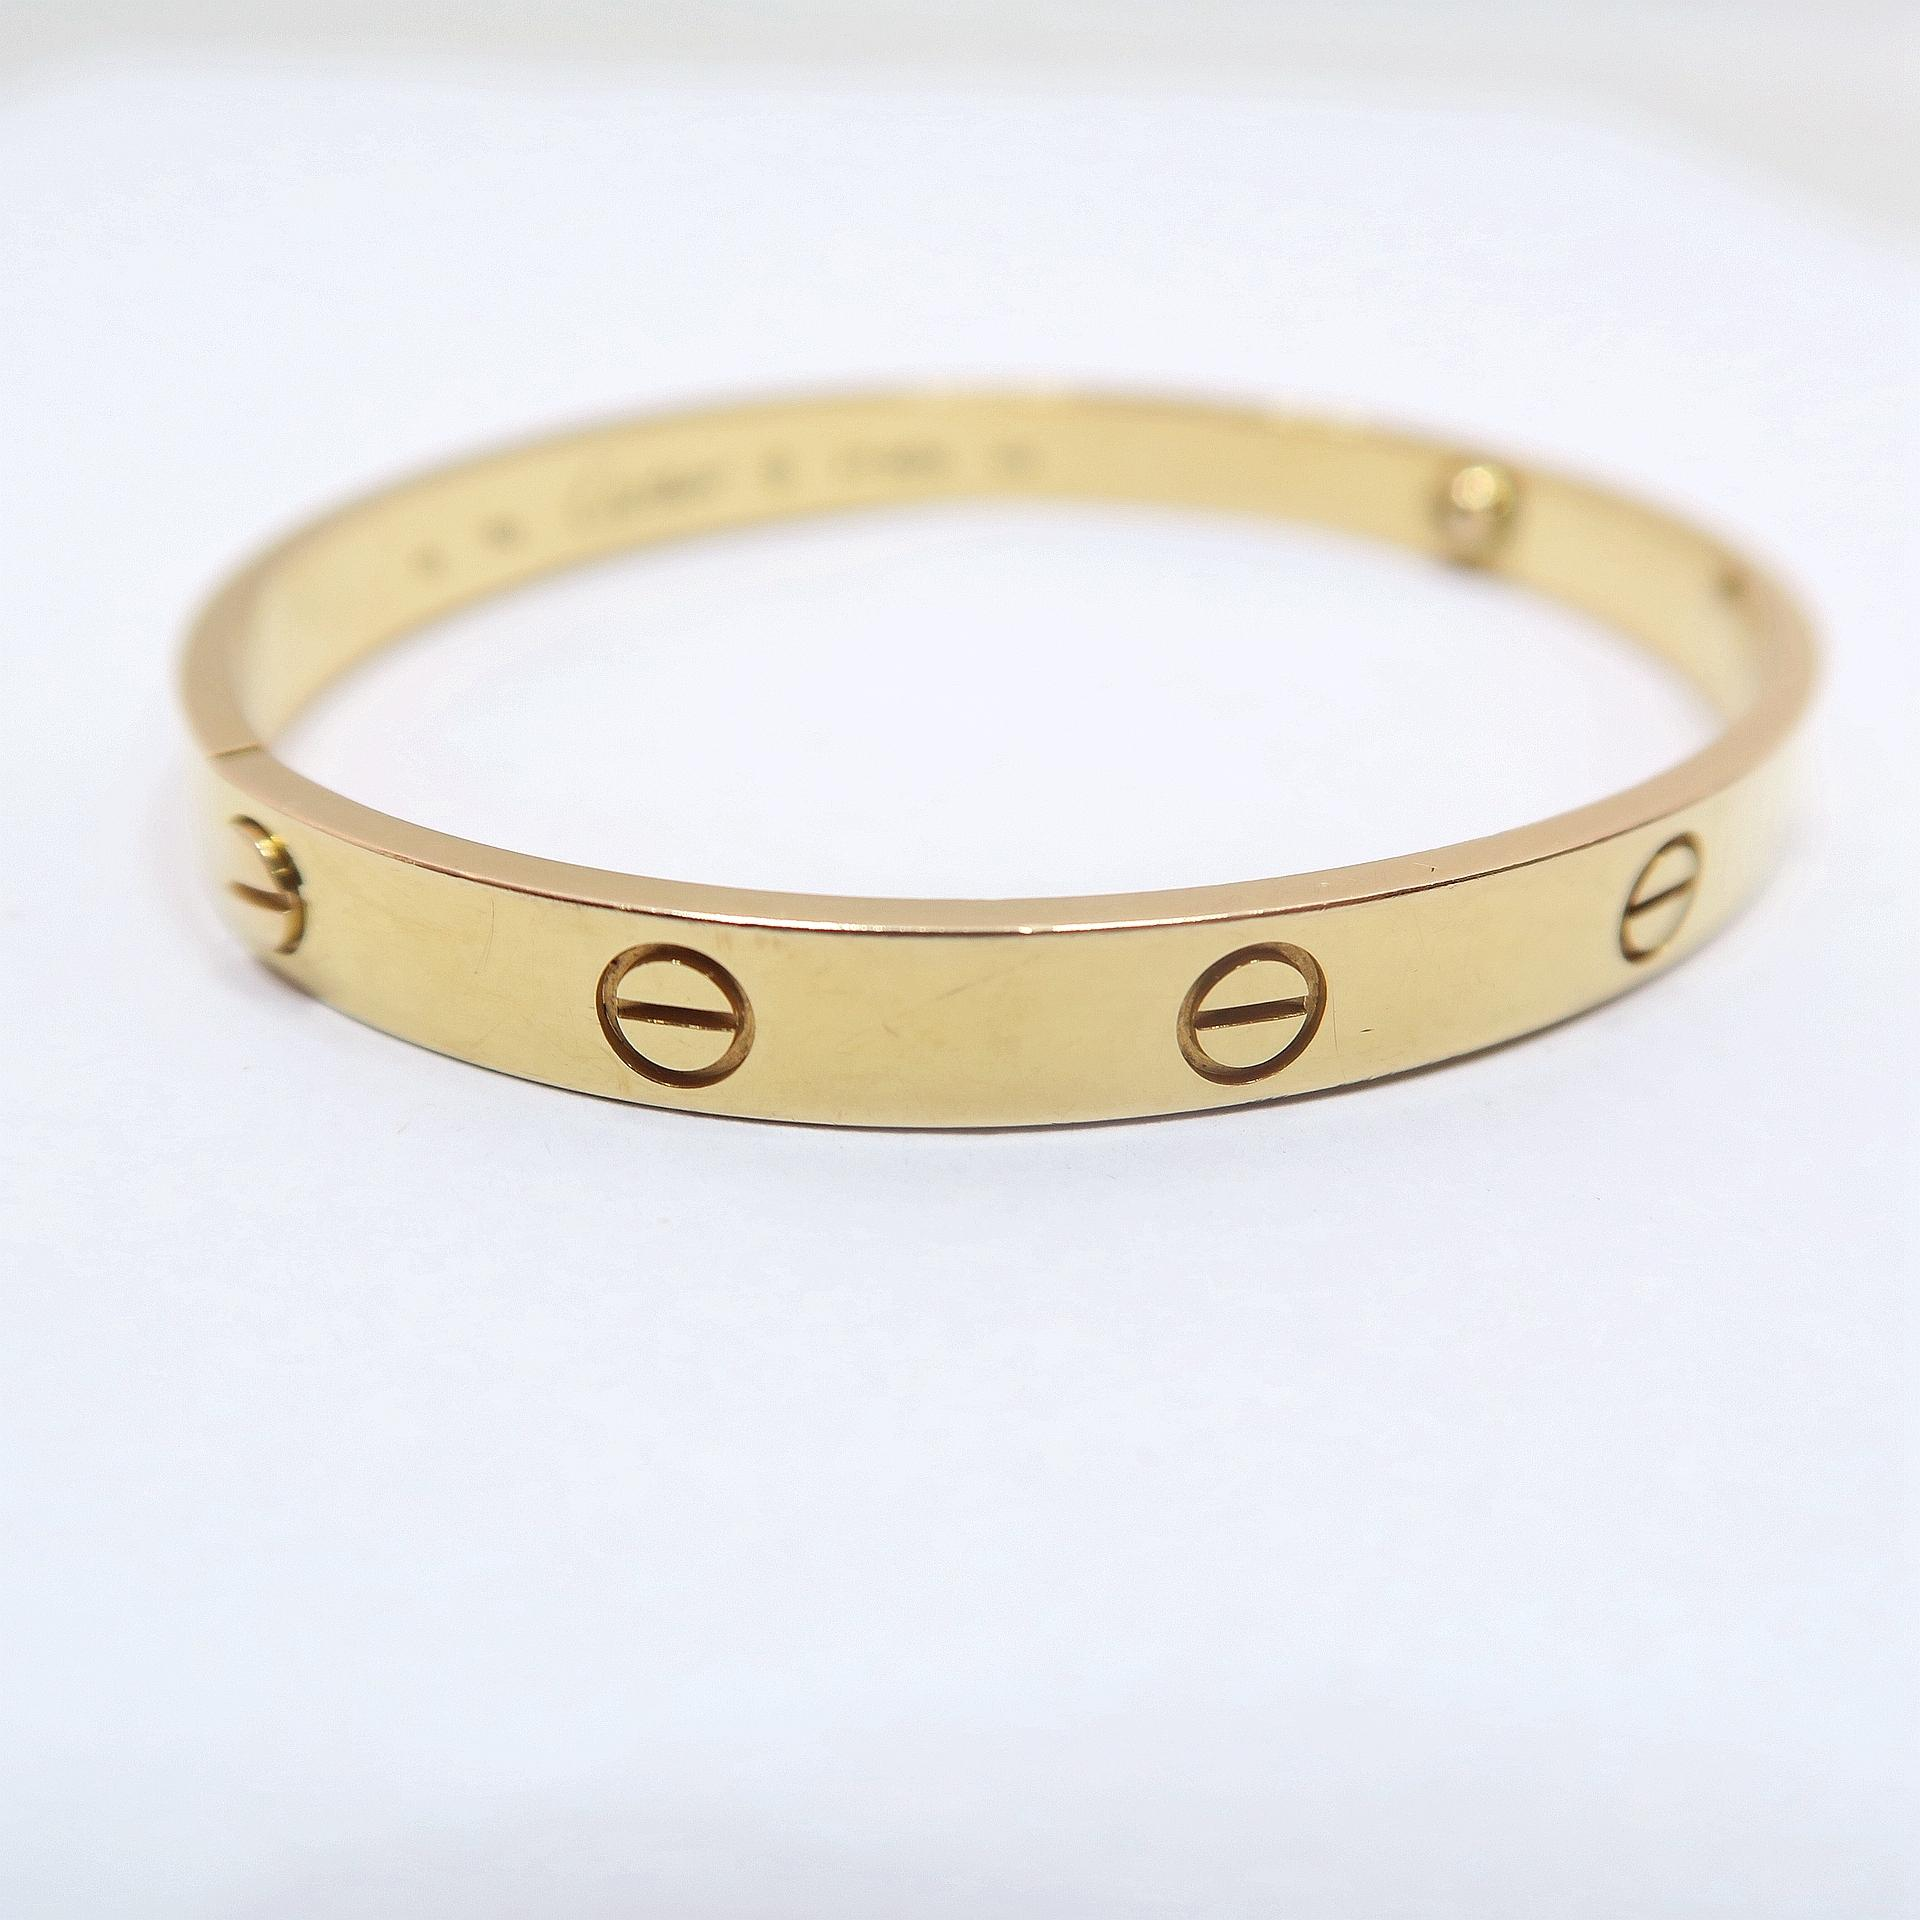 cartier bracelet sizes cartier yellow gold size 19 bracelet tradesy 7887